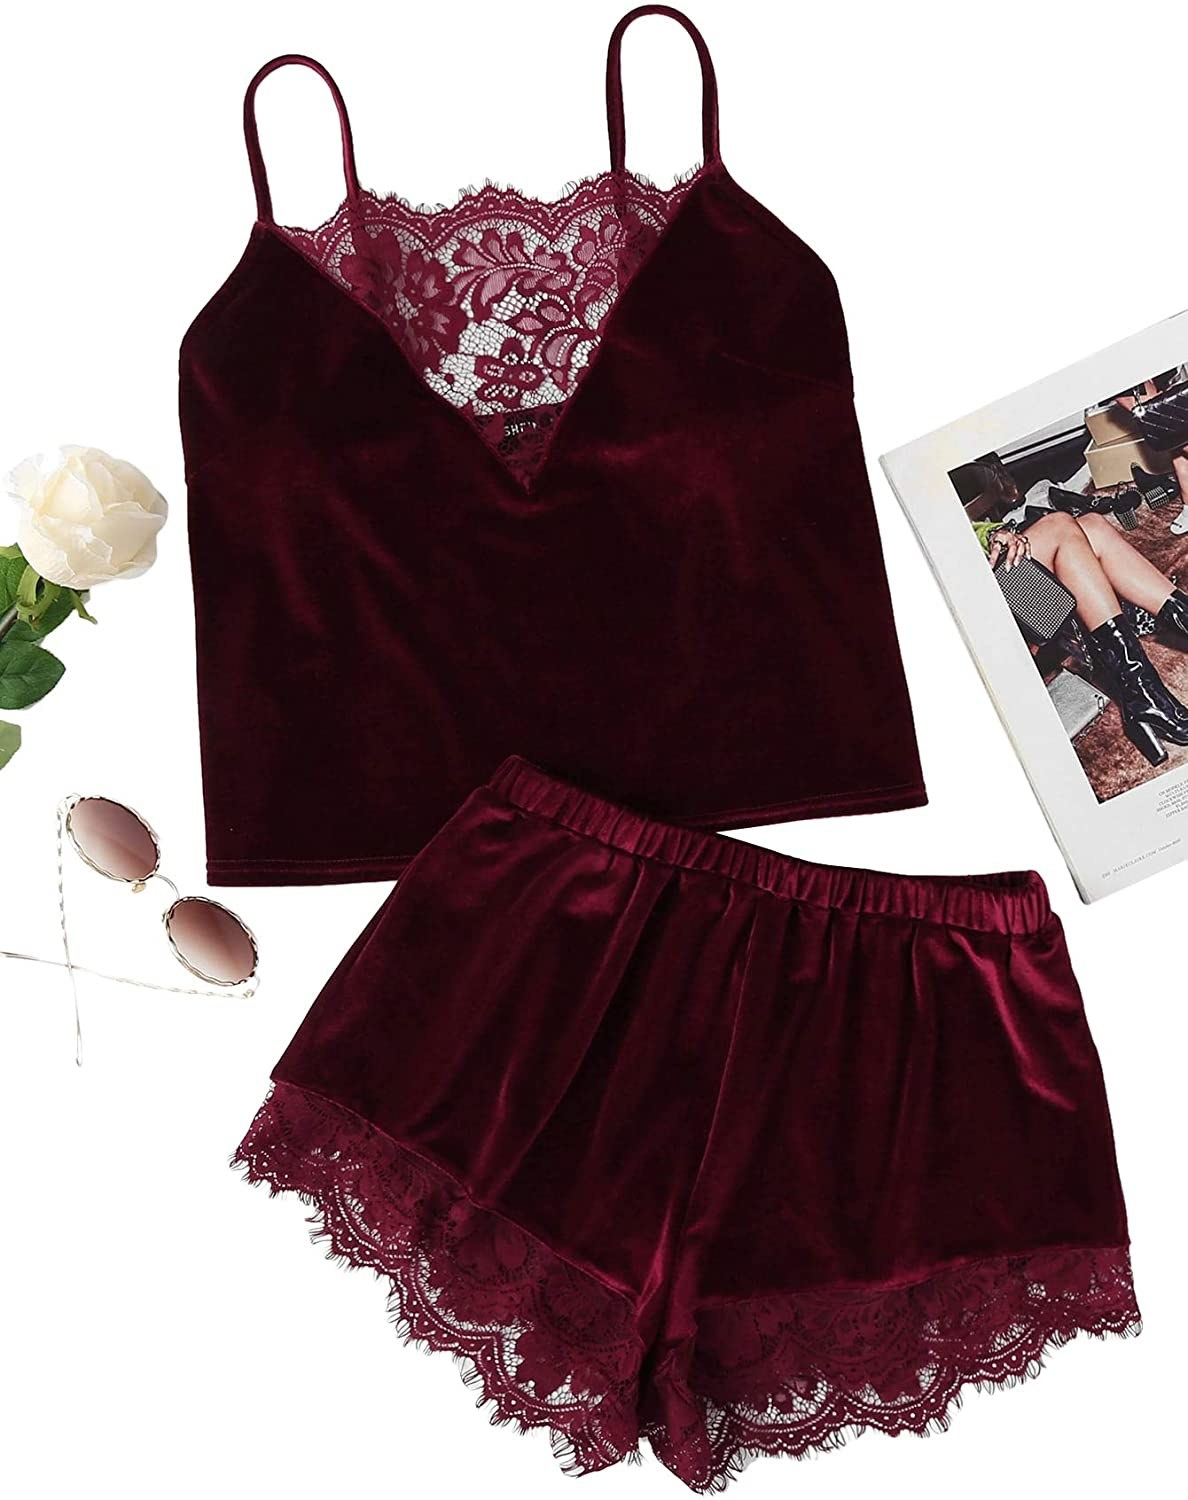 the burgundy velvet tank top and lace trim shorts